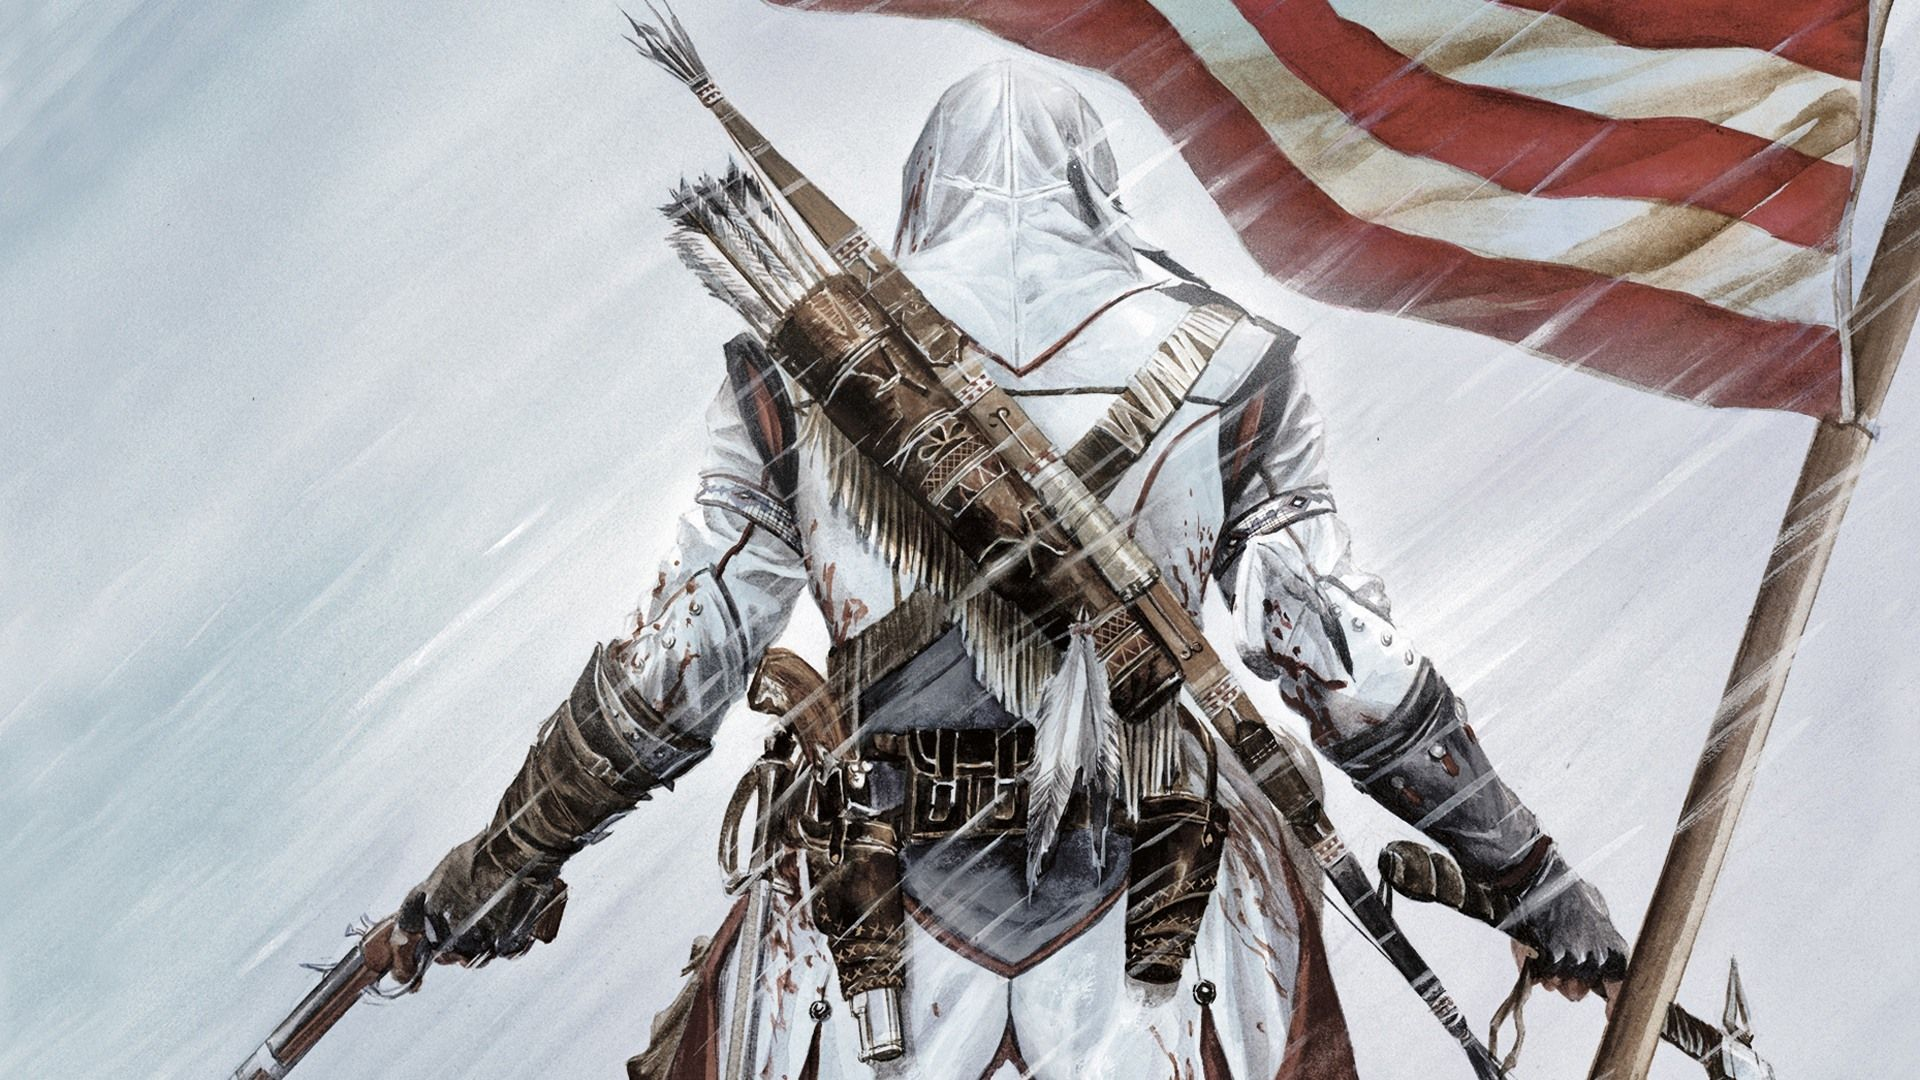 Assassins creed wallpaper game wallpapers hd wallpapers mobile phone assassins creed wallpapers hd desktop assassins creed 3 backgrounds wallpapers voltagebd Gallery